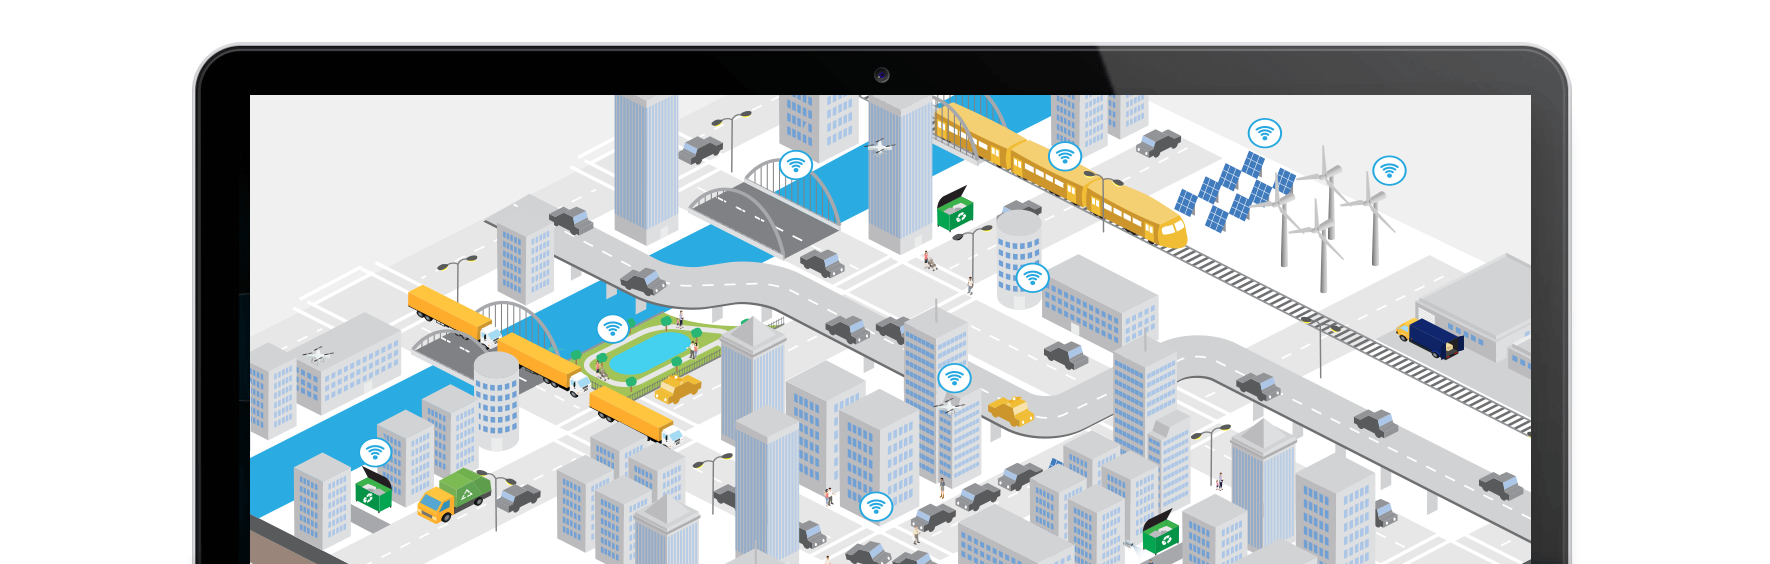 Smart City WiFi Network of IoT, Solar Panels, Waste Management, Traffic Congestion, Monitoring and many more.